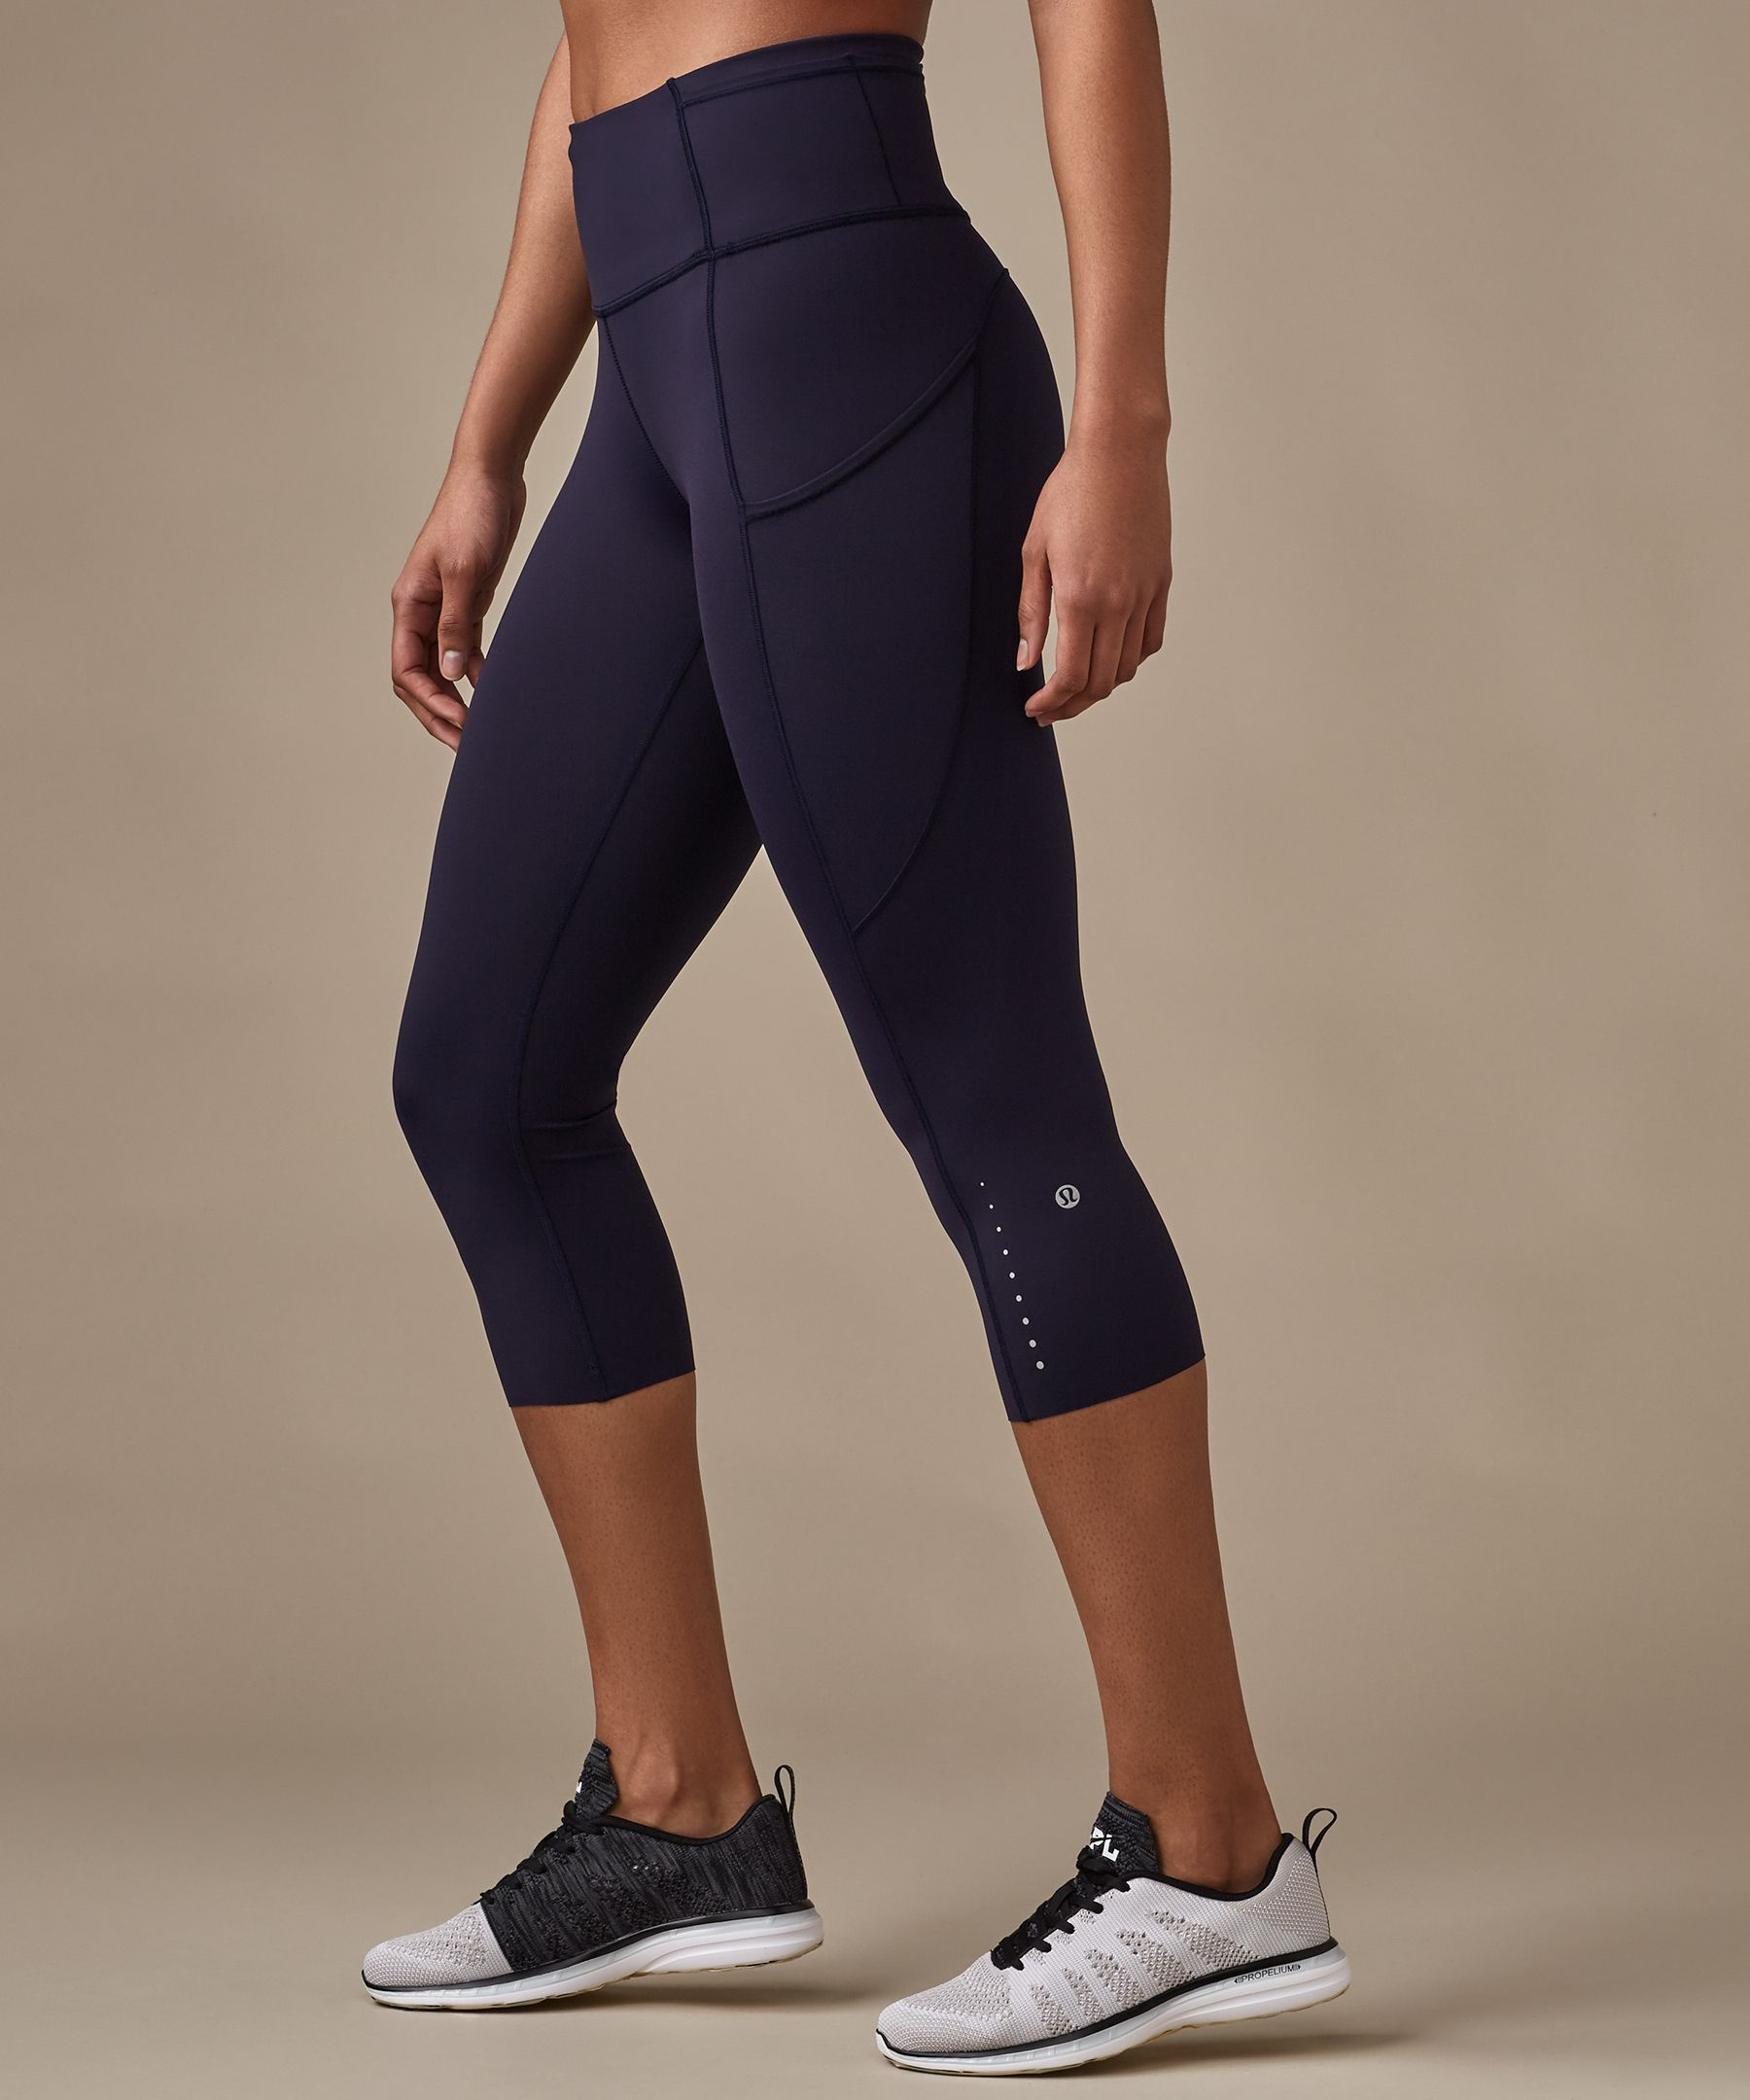 b4c92c517bd4b Feel fast and free in these barely there, sweat-wicking run crops. An  interior waist drawcord ensures the perfect fit, while reflective details  keep you ...